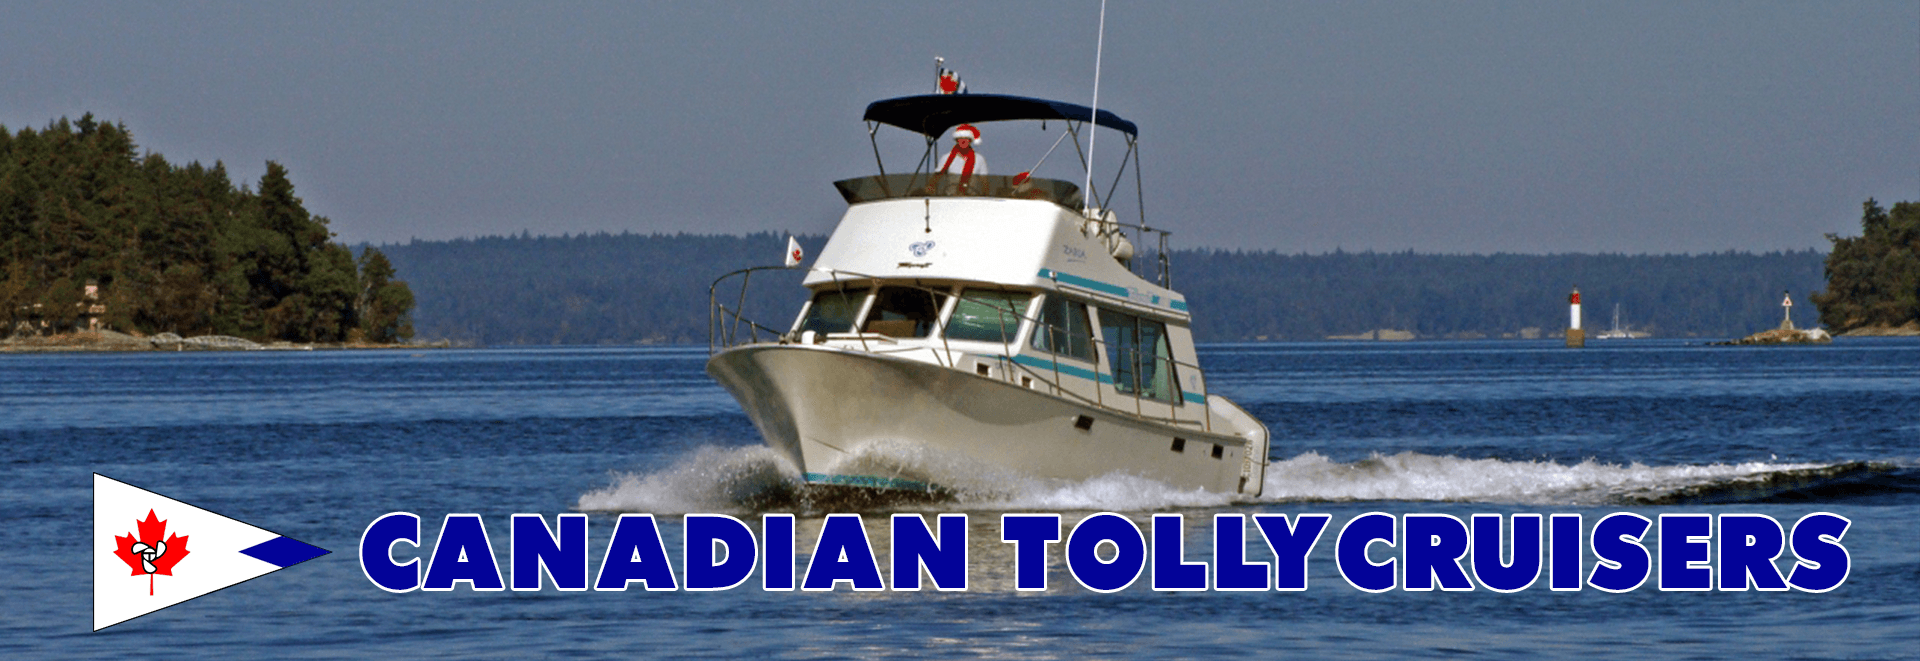 Canadian Tollycruisers